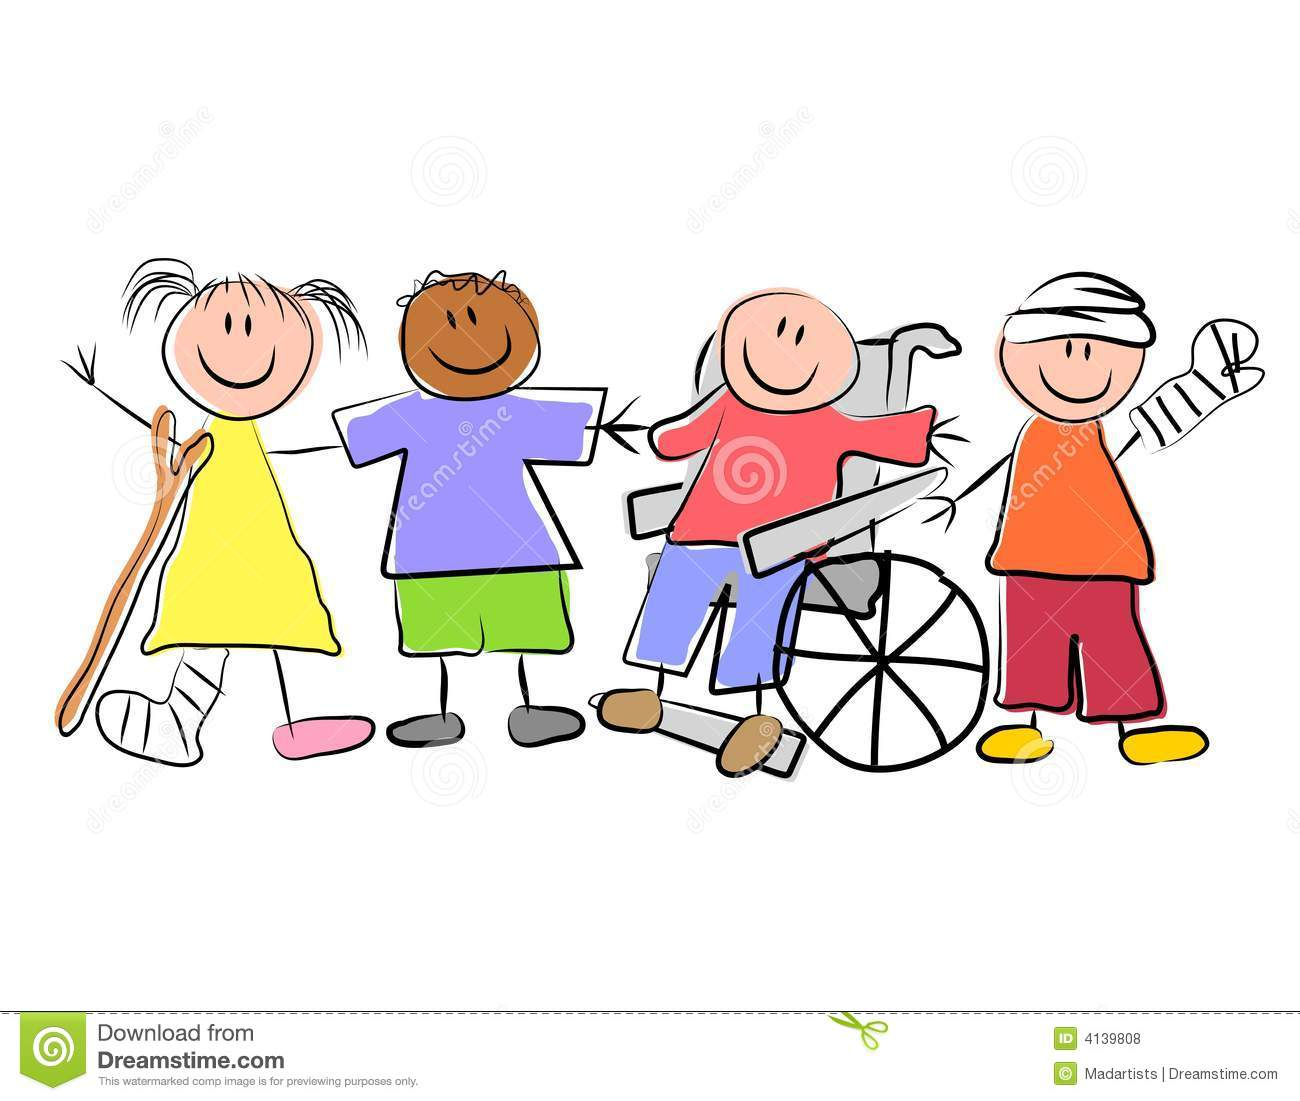 Clip Art Illustration Featuring A Group Of Kids Standing And Smiling